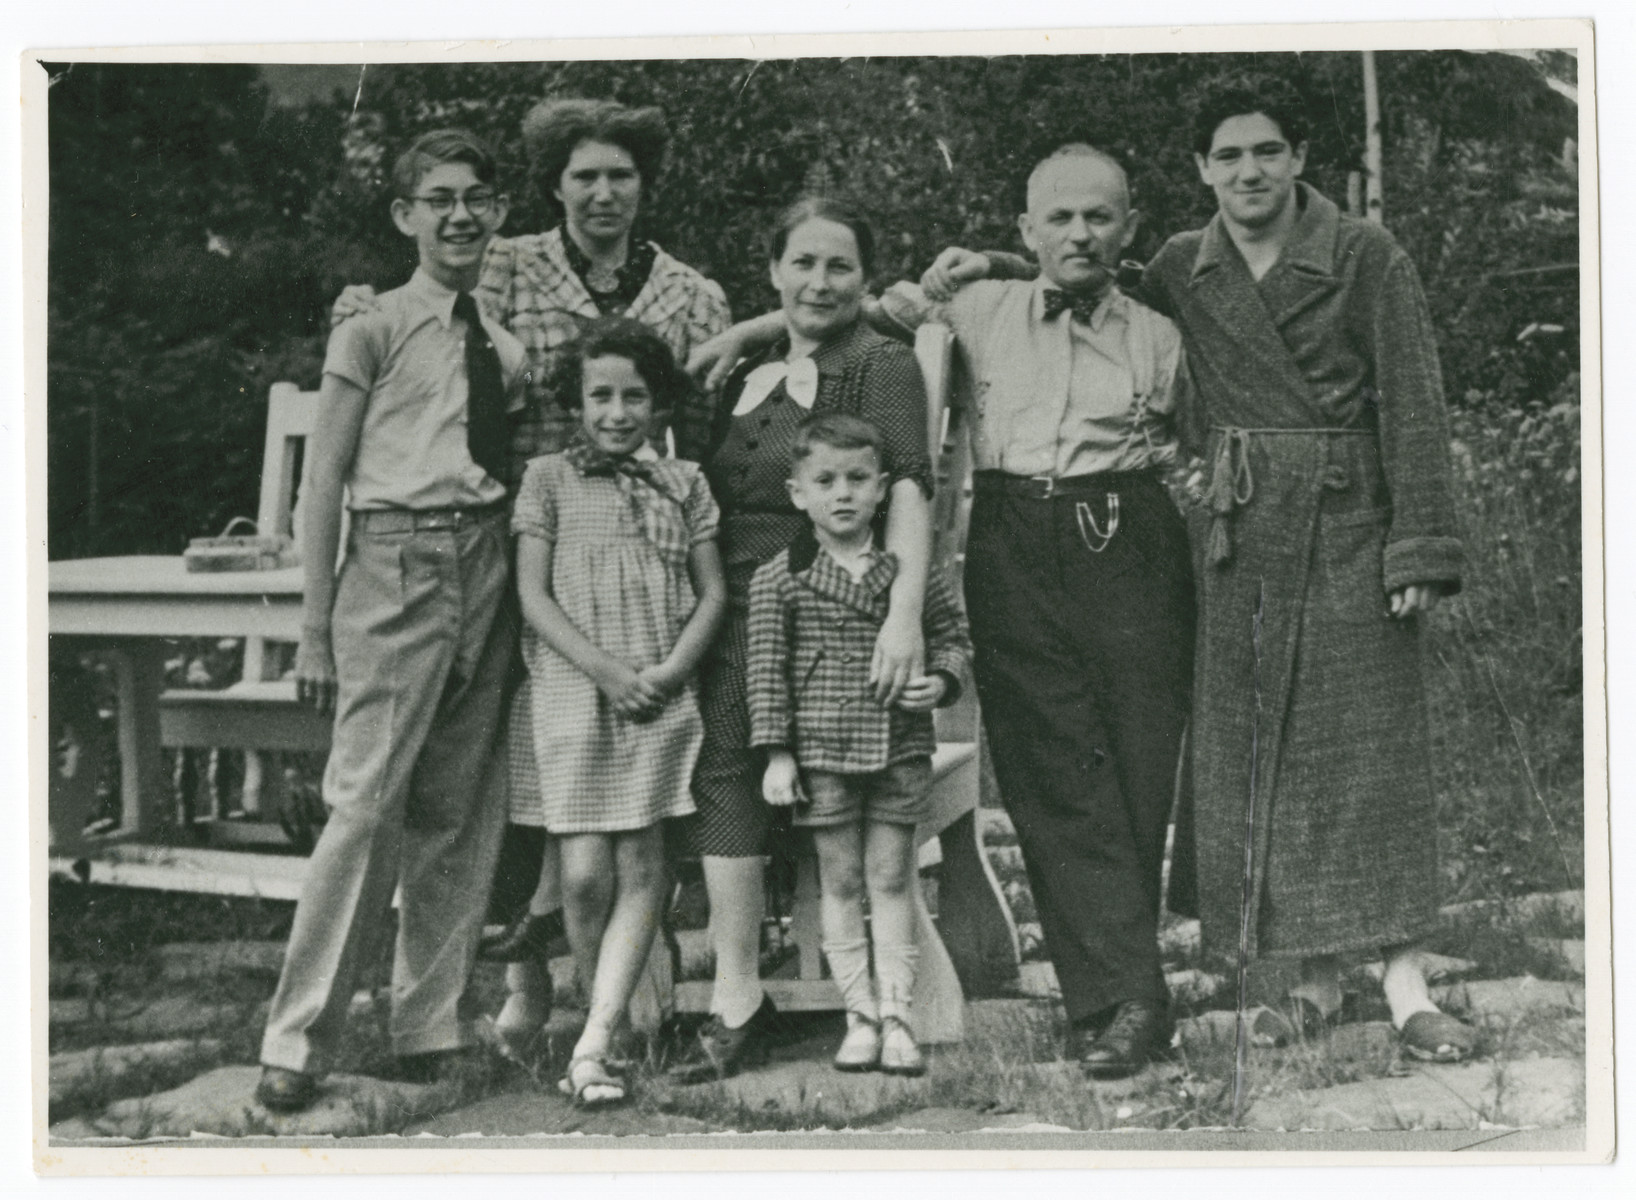 Norbert, Helmut, and Erna Isenberg pose with extended family members.   Pictured (L-R): Norbert Isenberg, Erna Isenberg, Rosa Isenberg, Sigmund Isenberg, Helmut Isenberg. Children Margot Greif and Fritz Isenberg are also present.